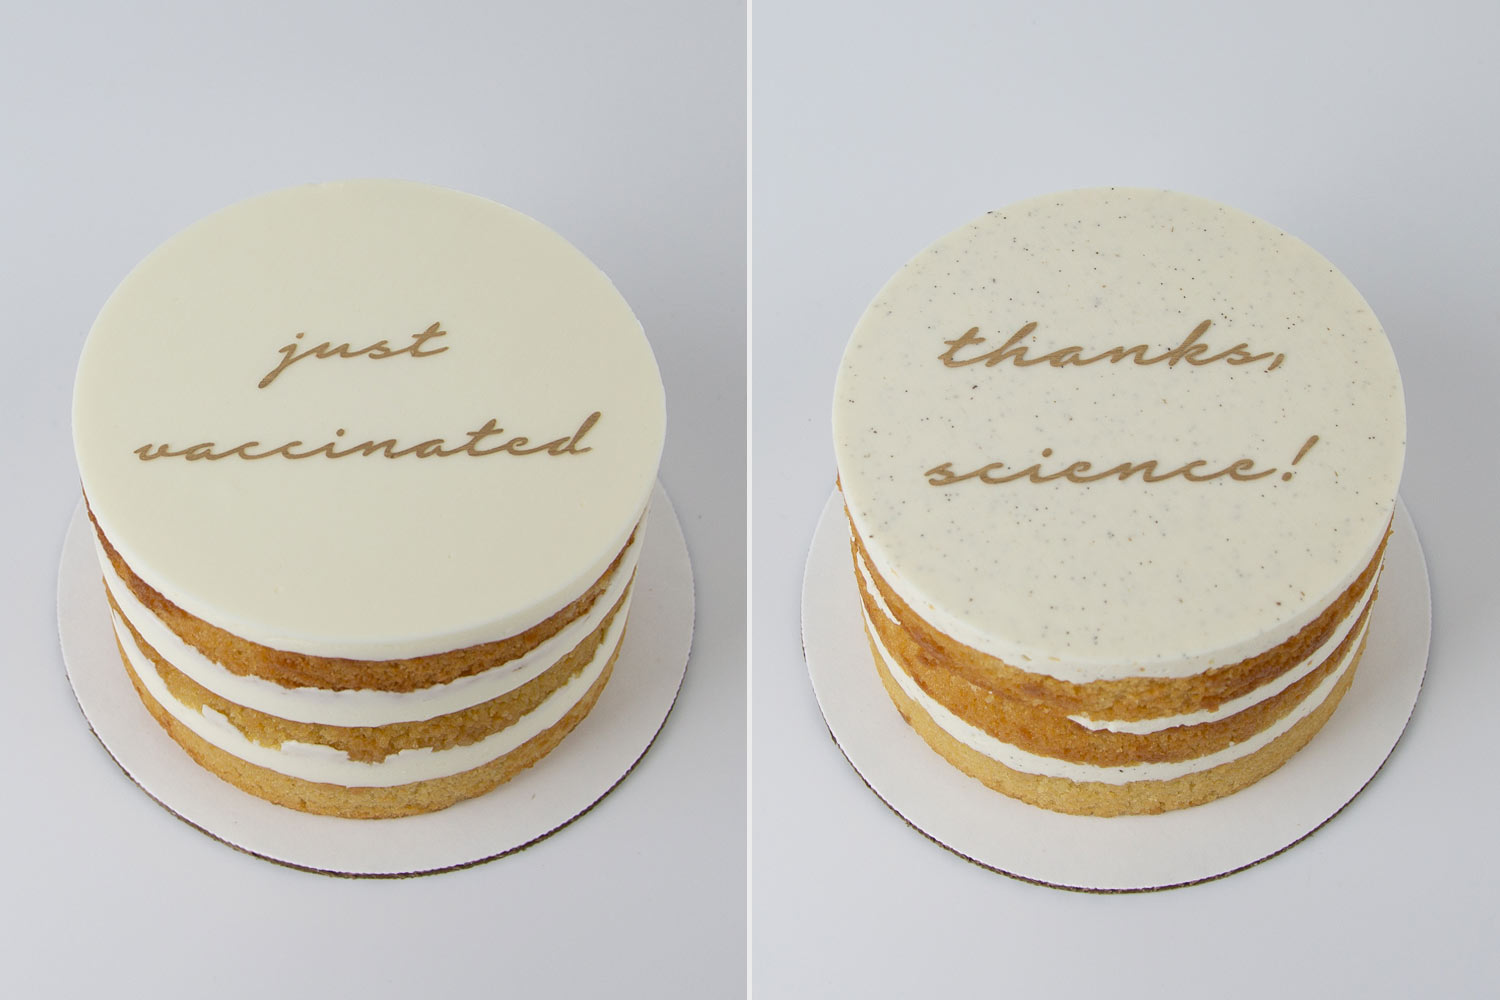 vaccinated cakes